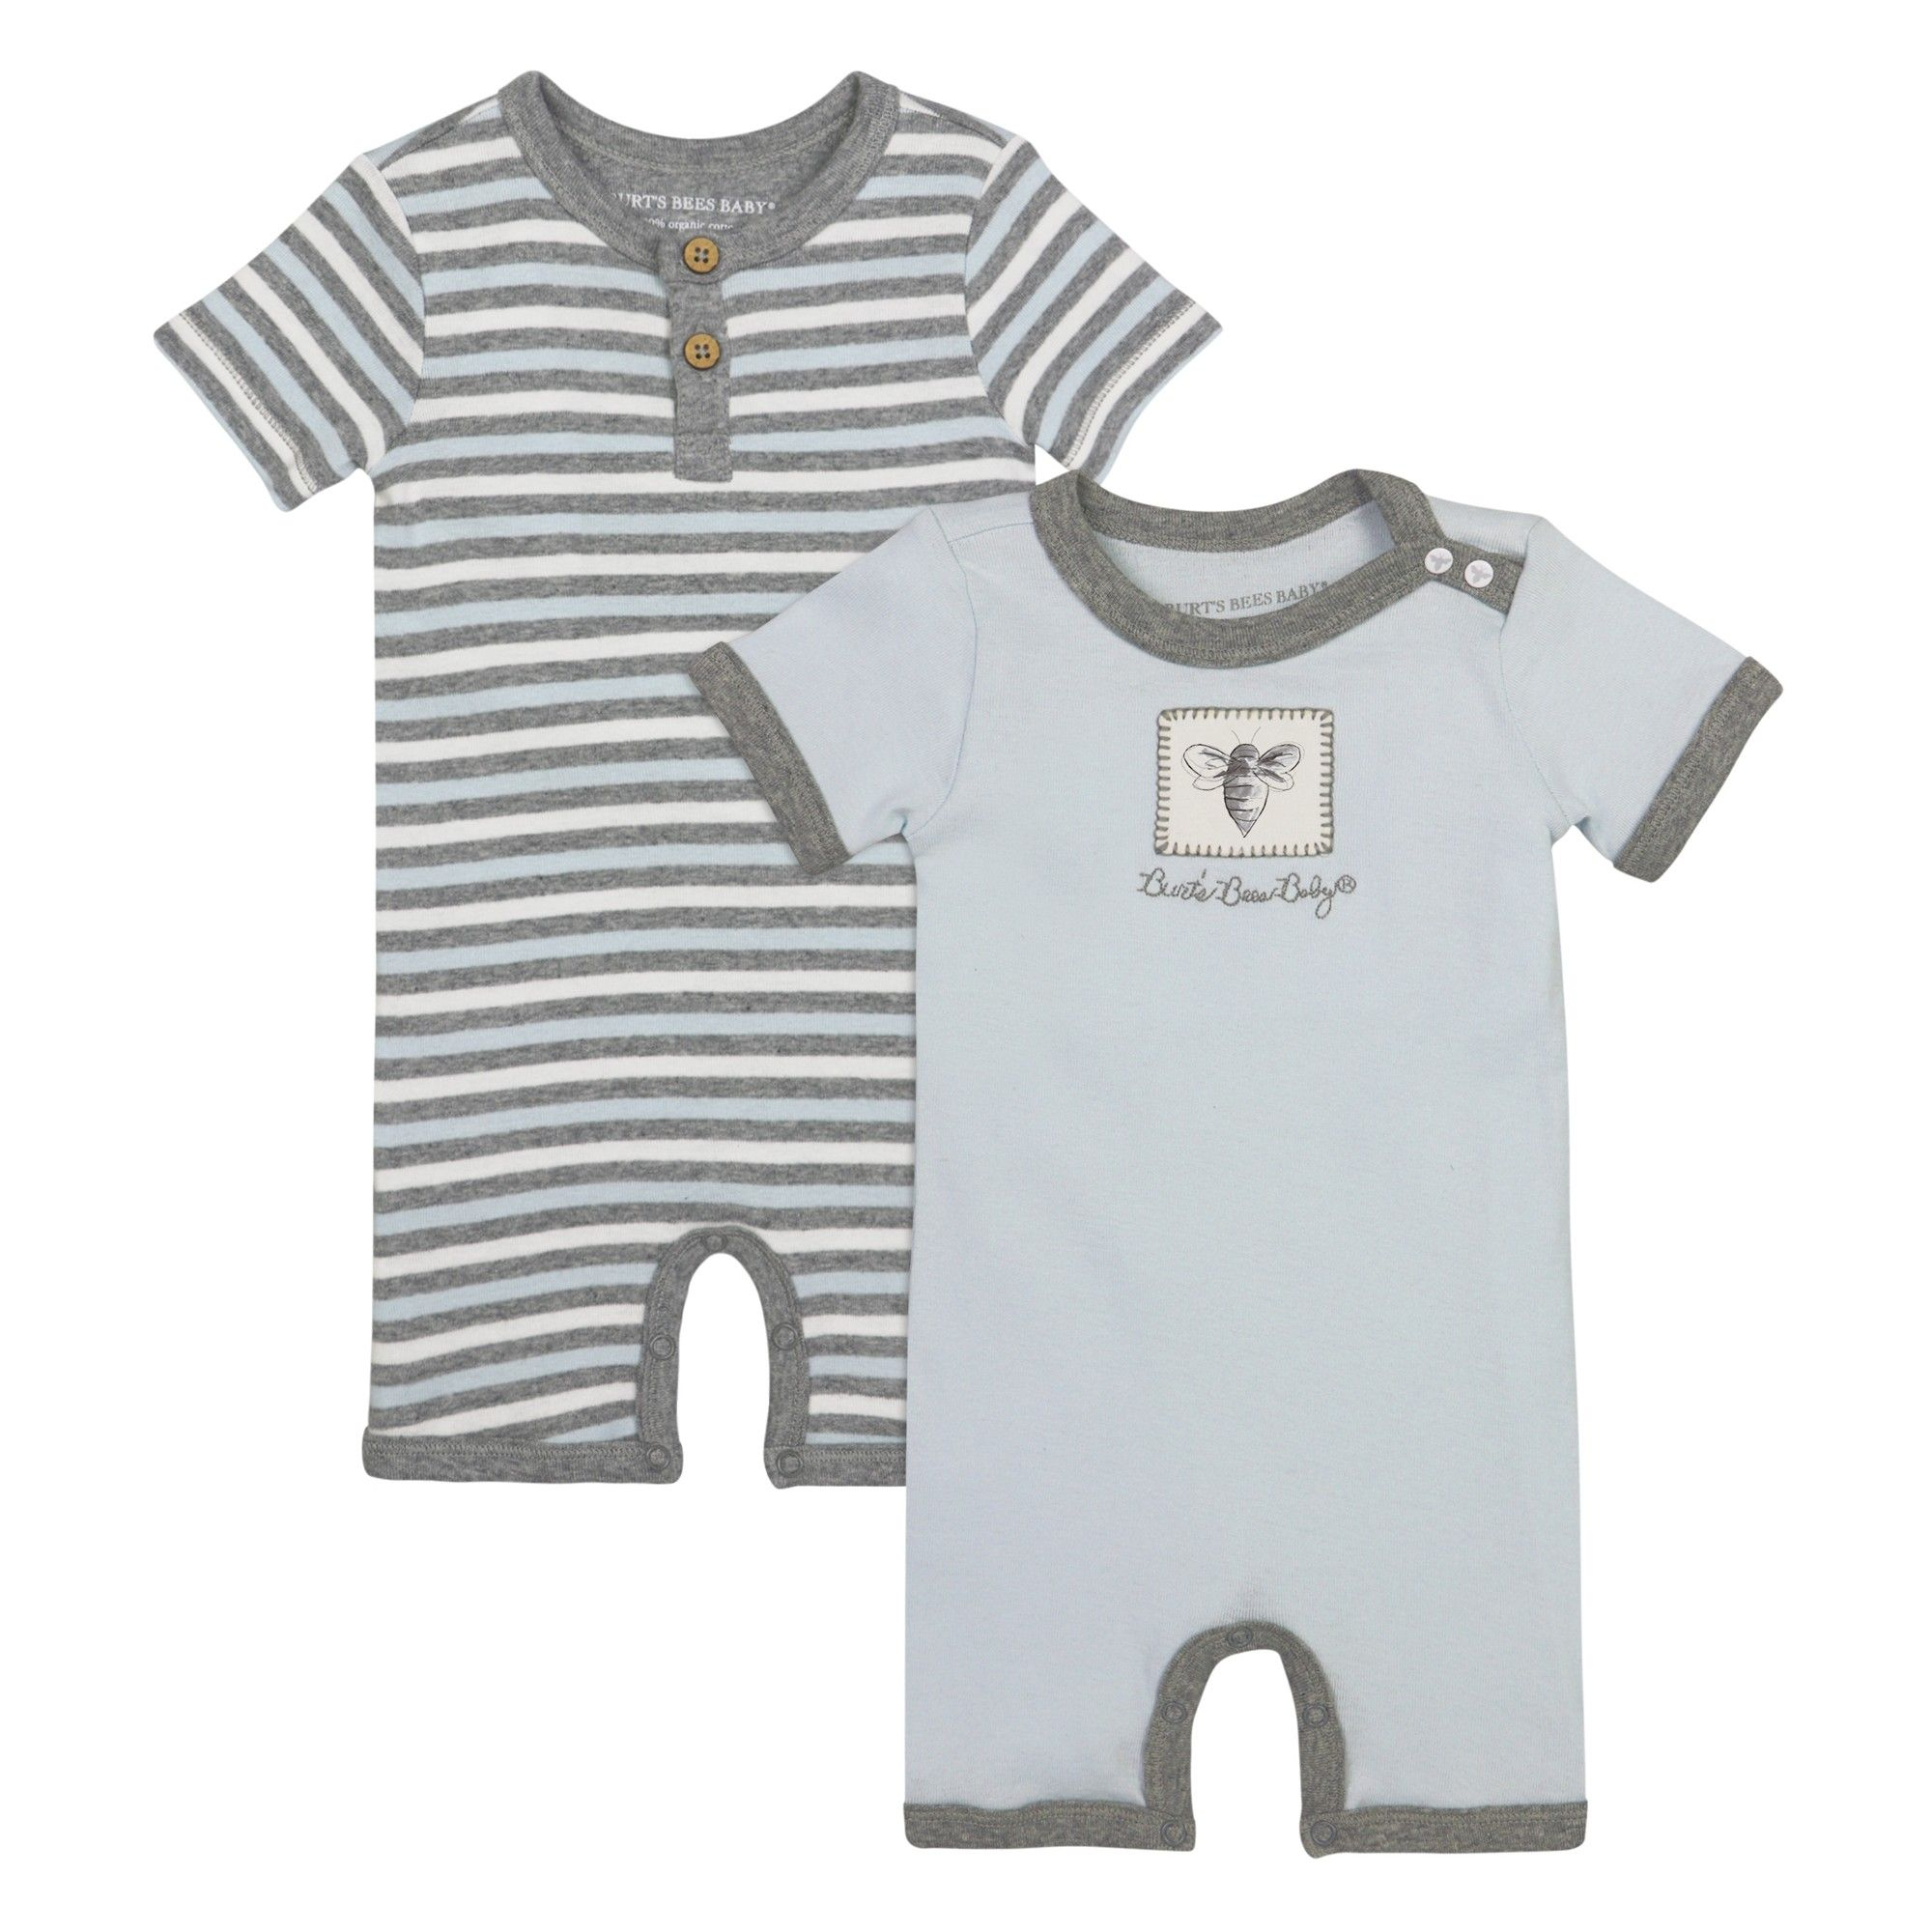 Burts Bees Baby Boy Organic Rompers Outfit Set Size Newborn 3 6 Months Grey Blue